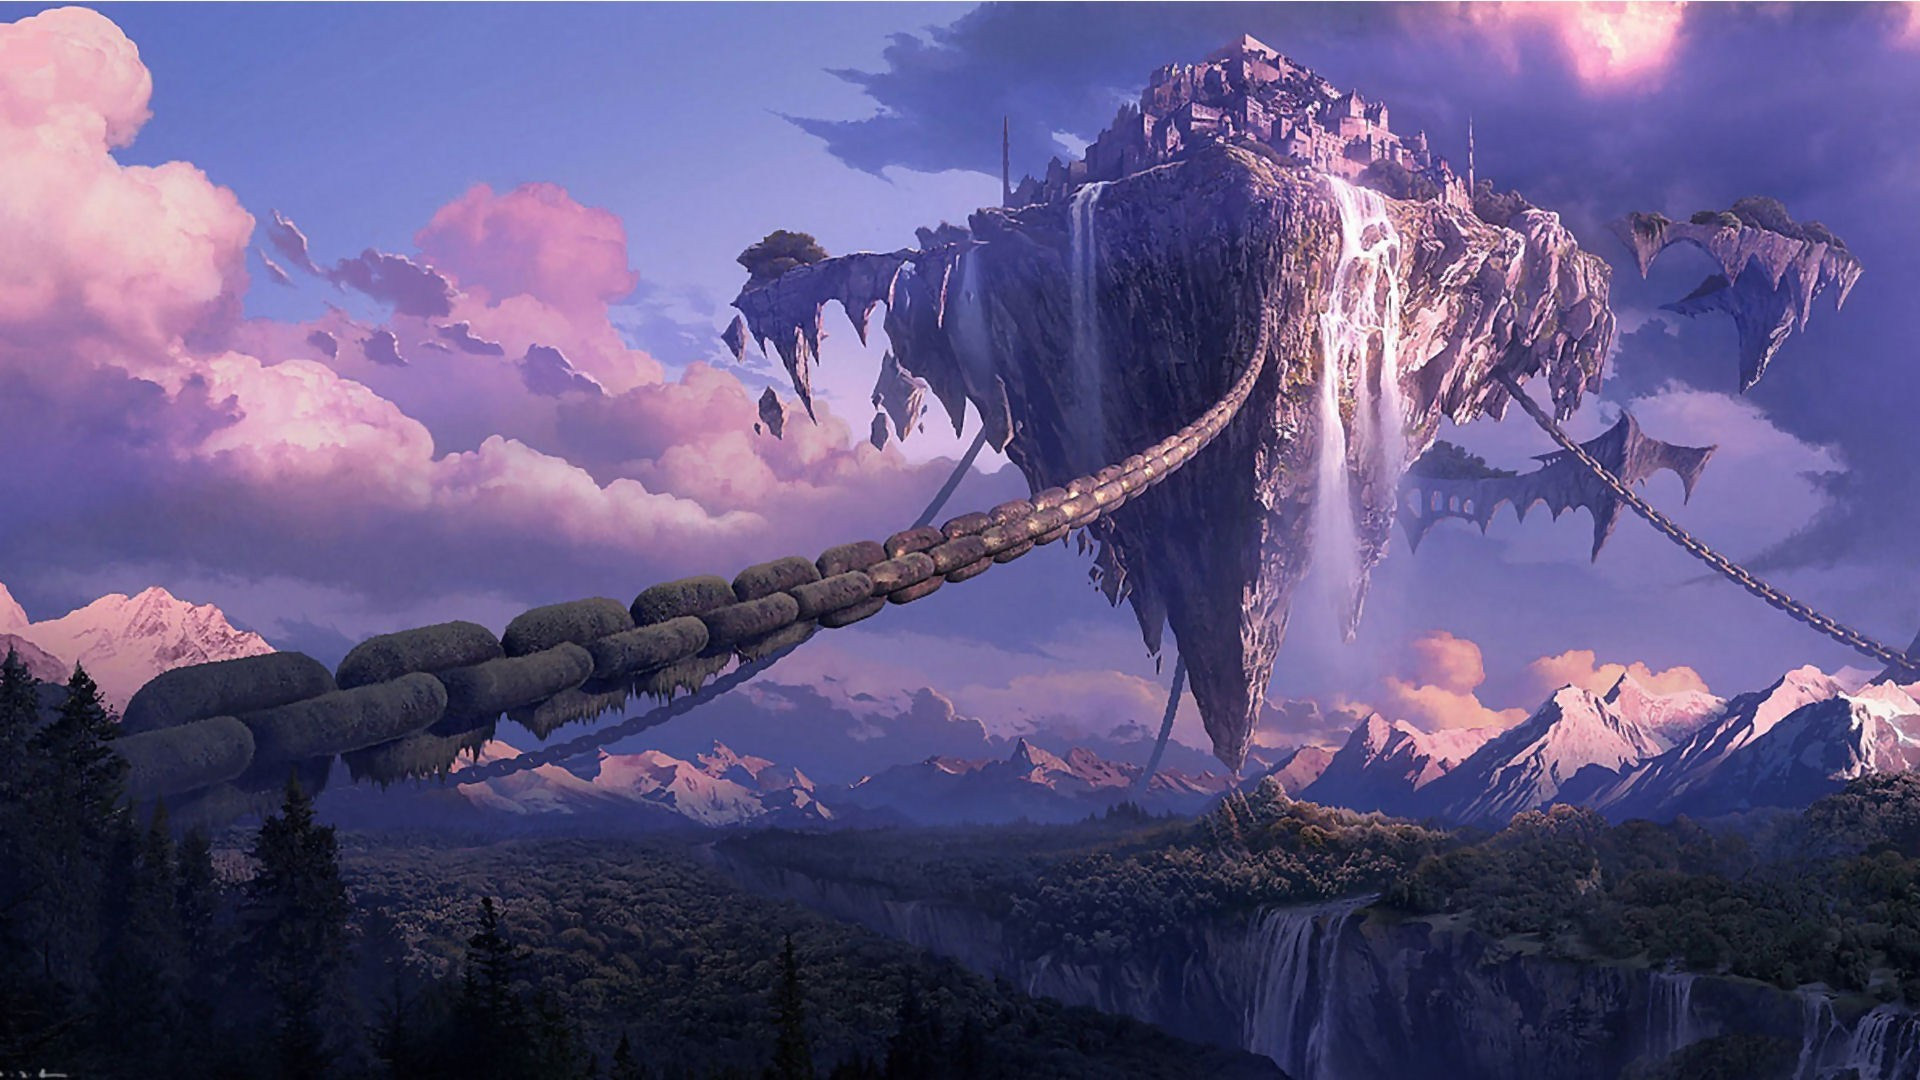 X Anime Fantasy Landscape Wallpaper Images